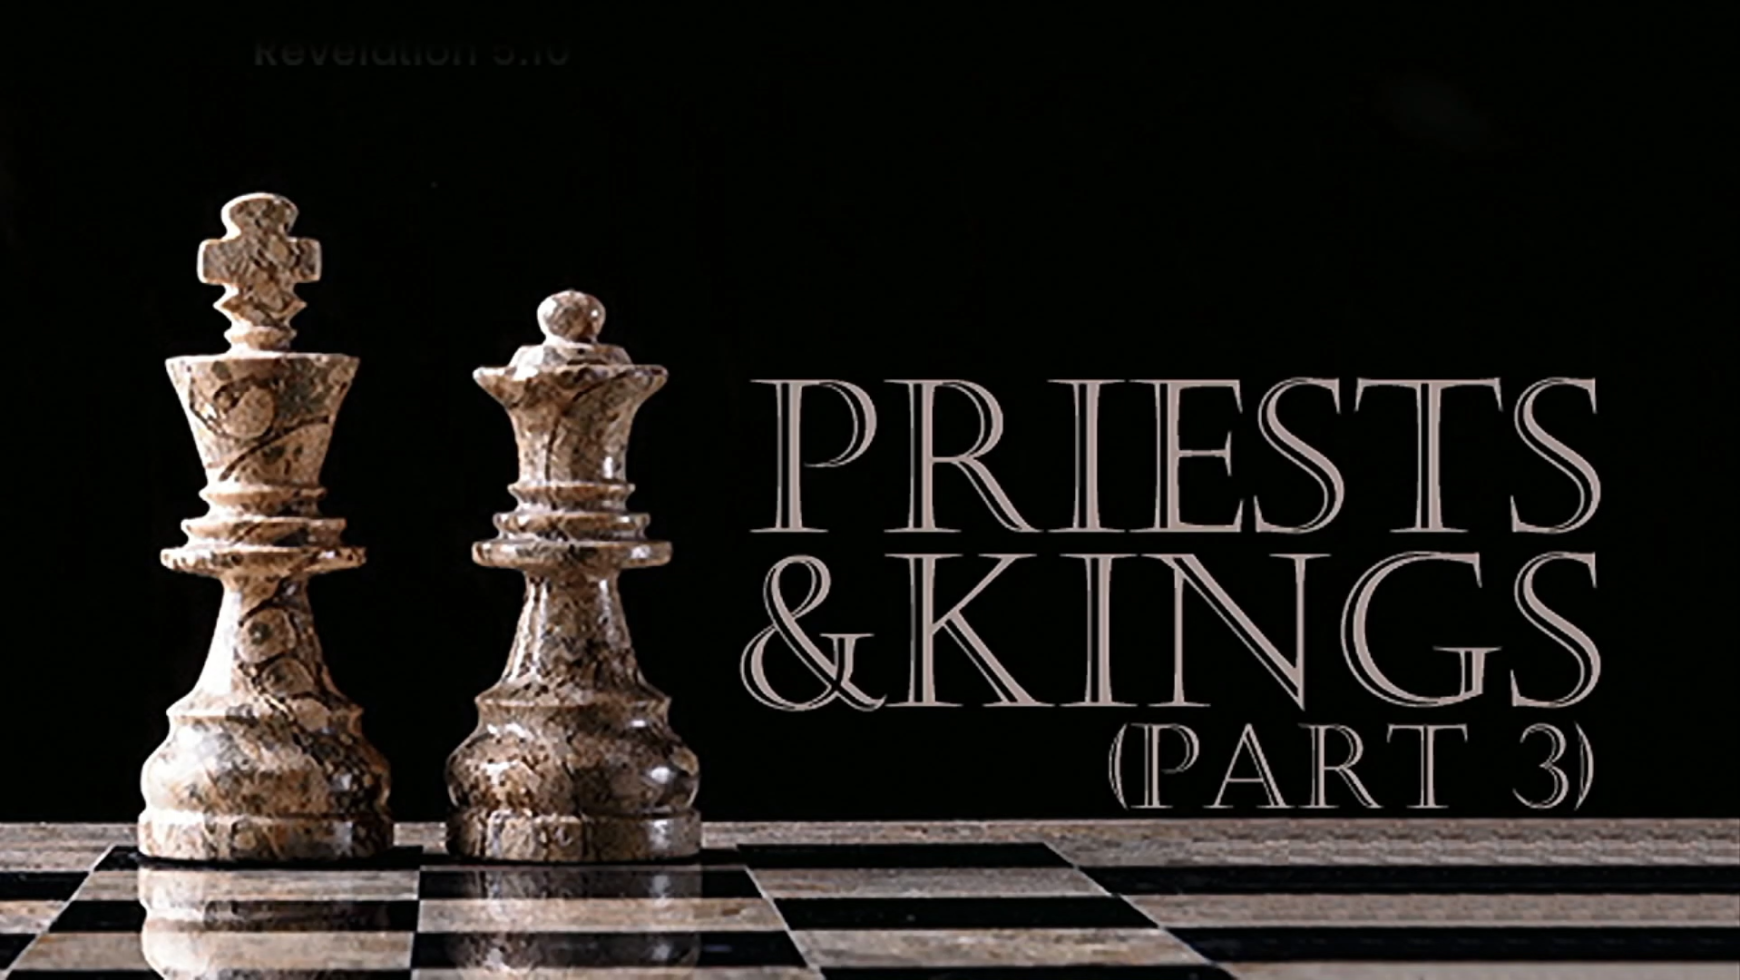 Priests and Kings (Part 3)